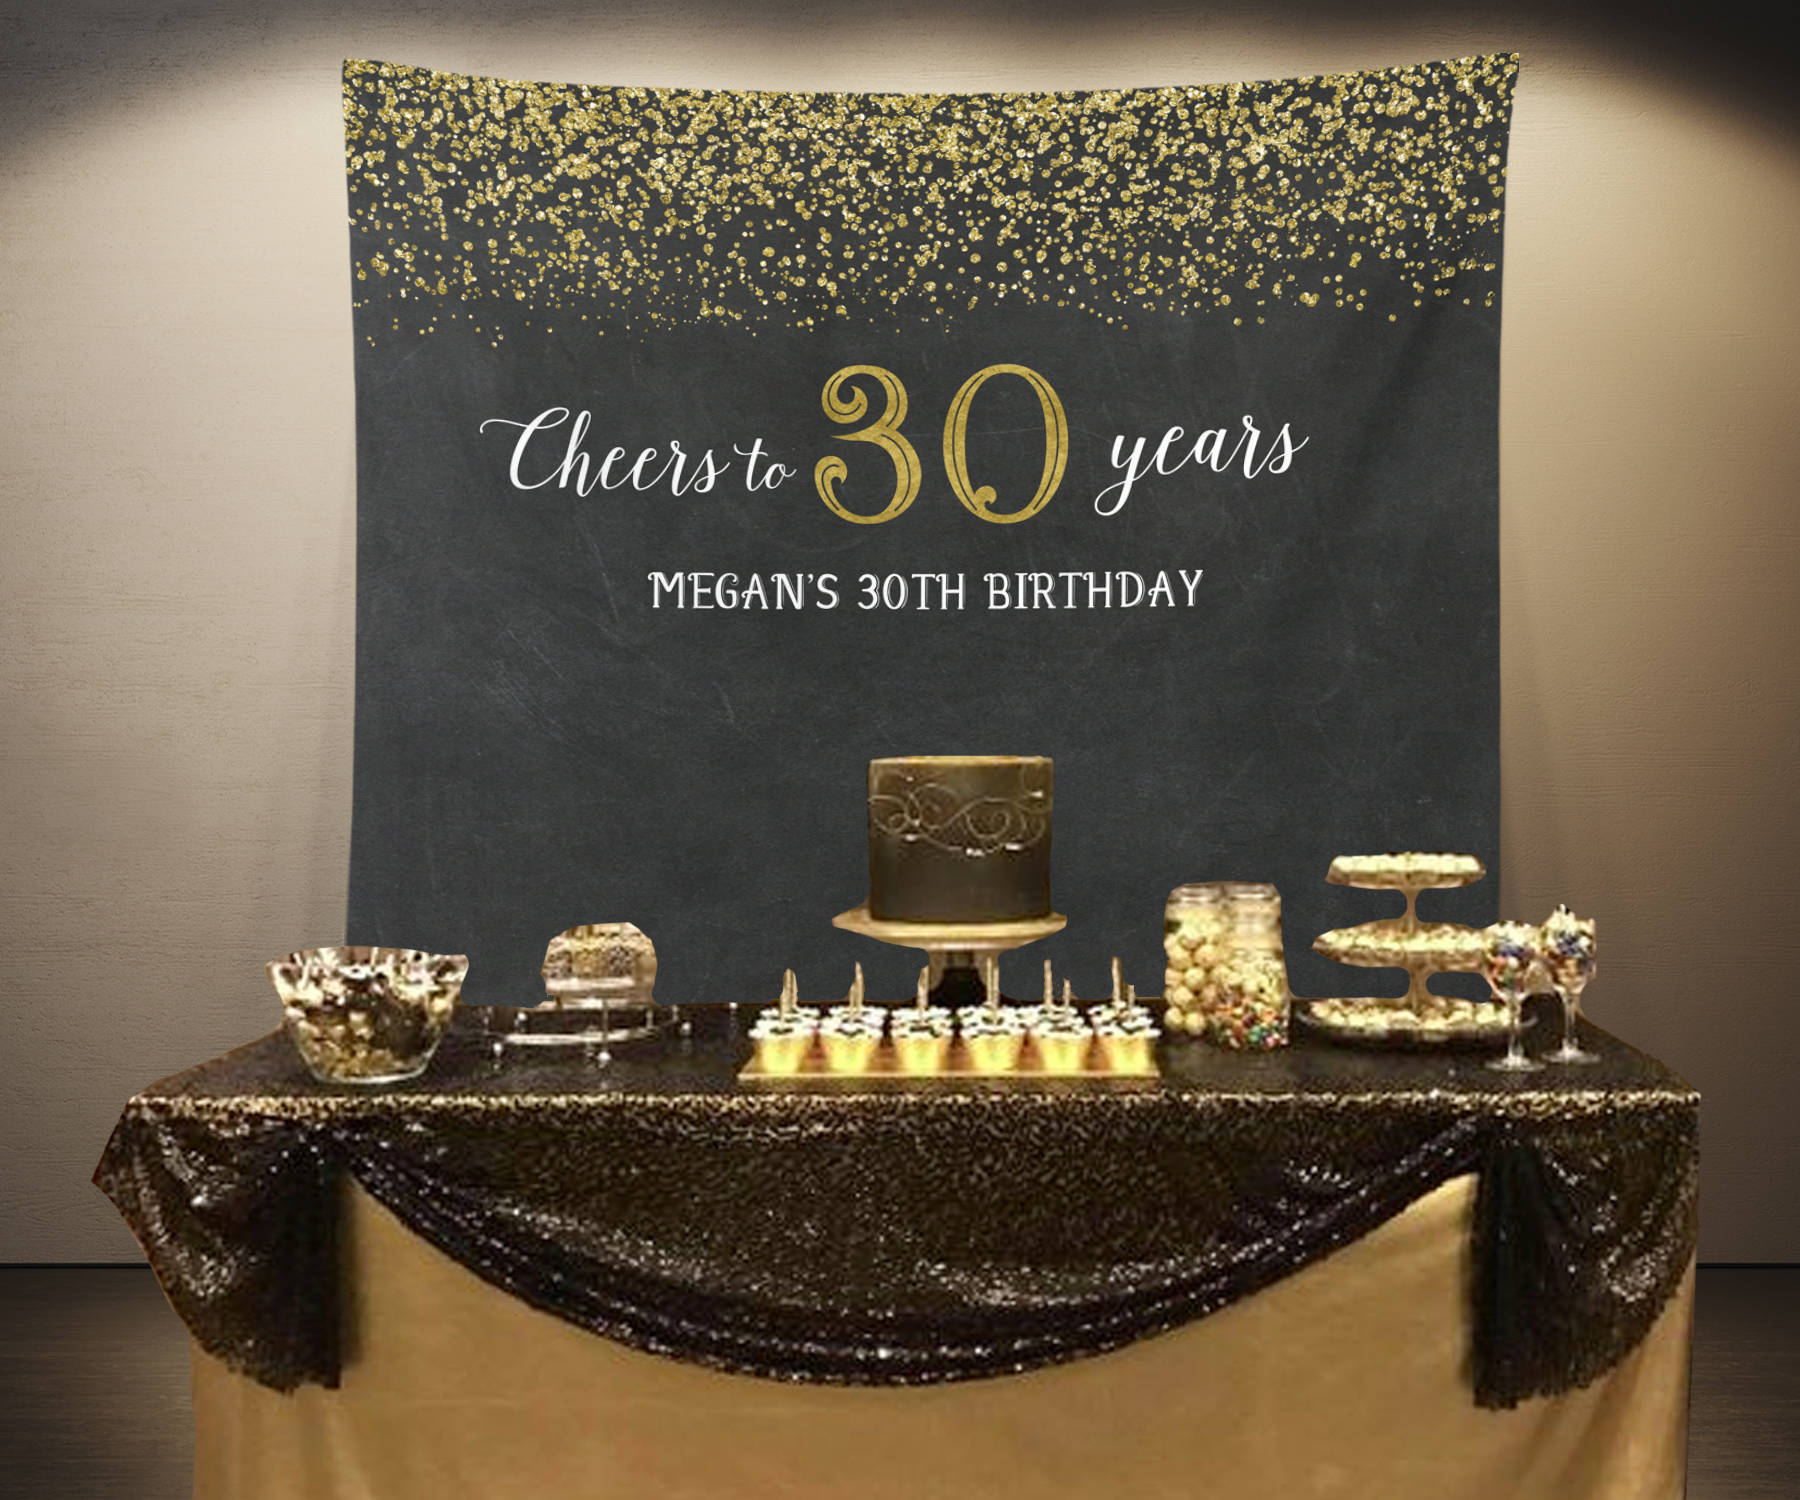 Cheers To 30 Years Backdrop